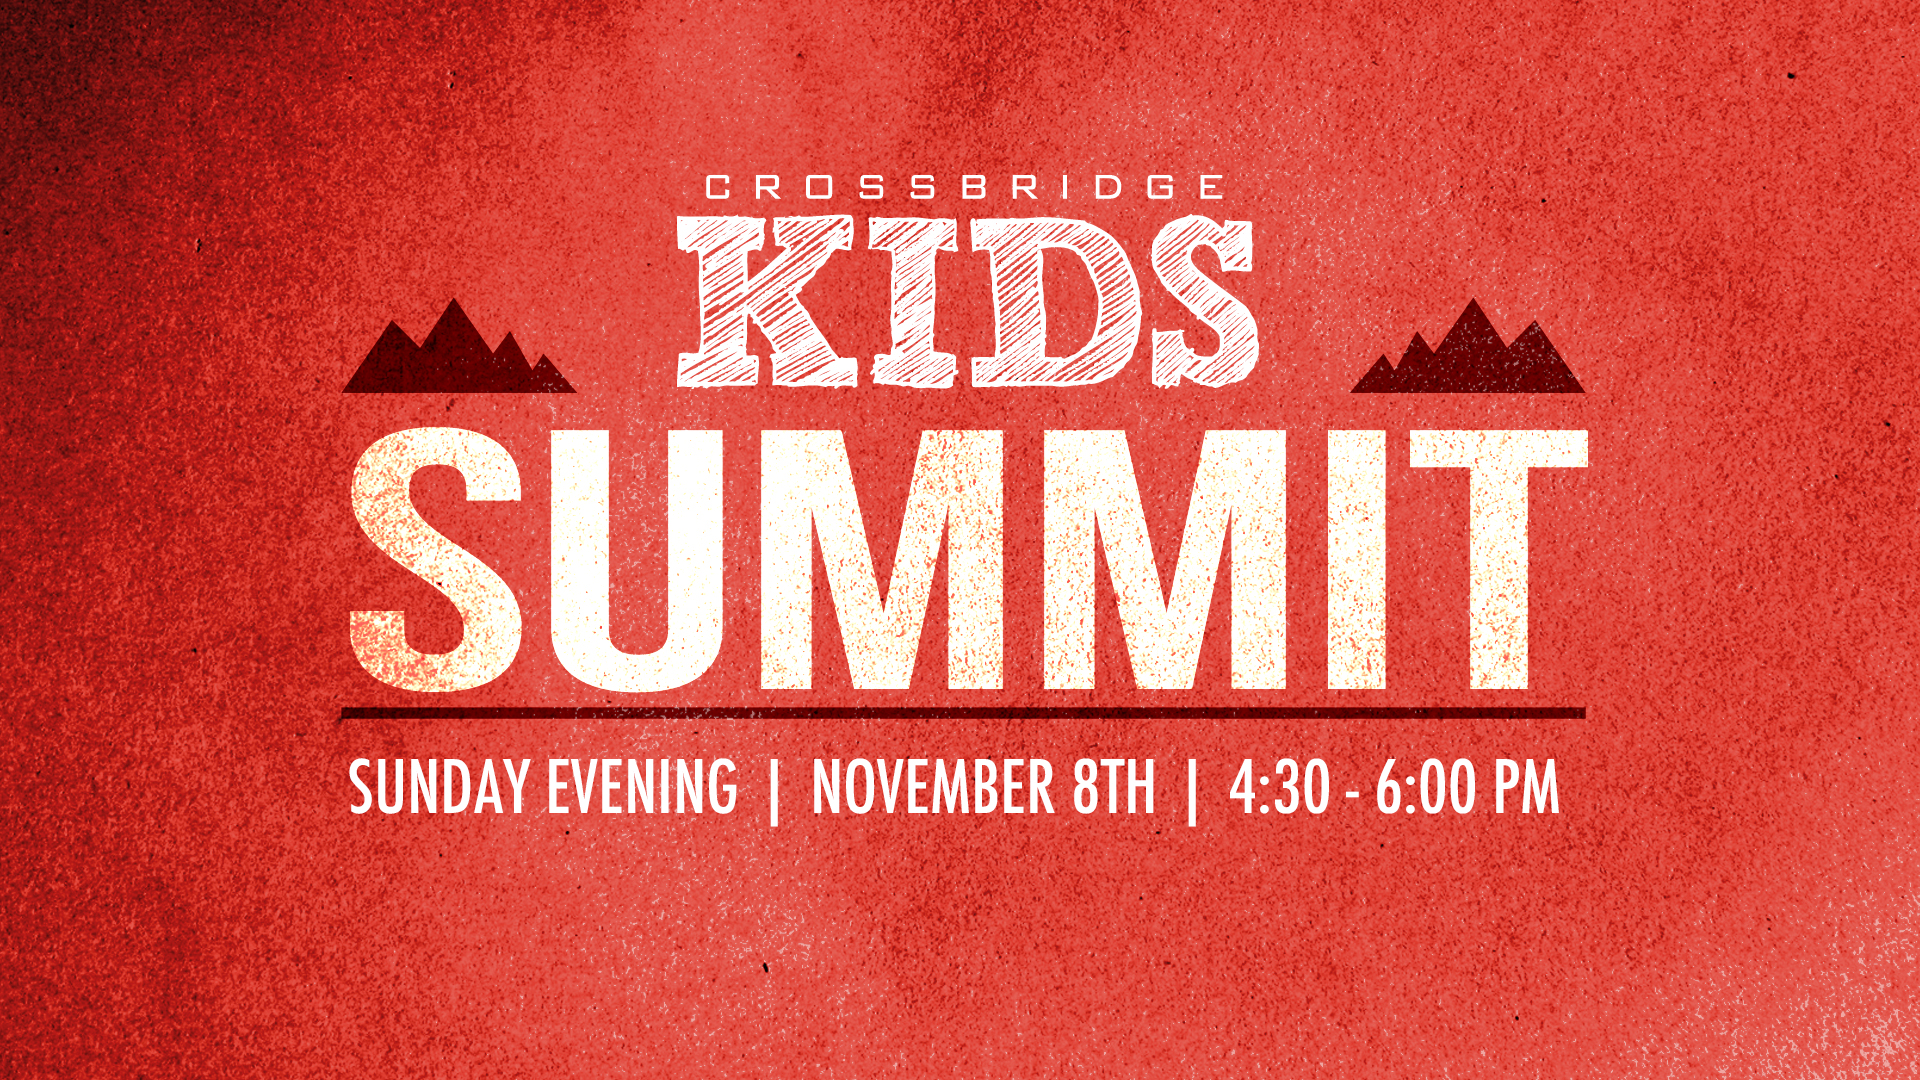 CB KIDS Summit 2015.jpg